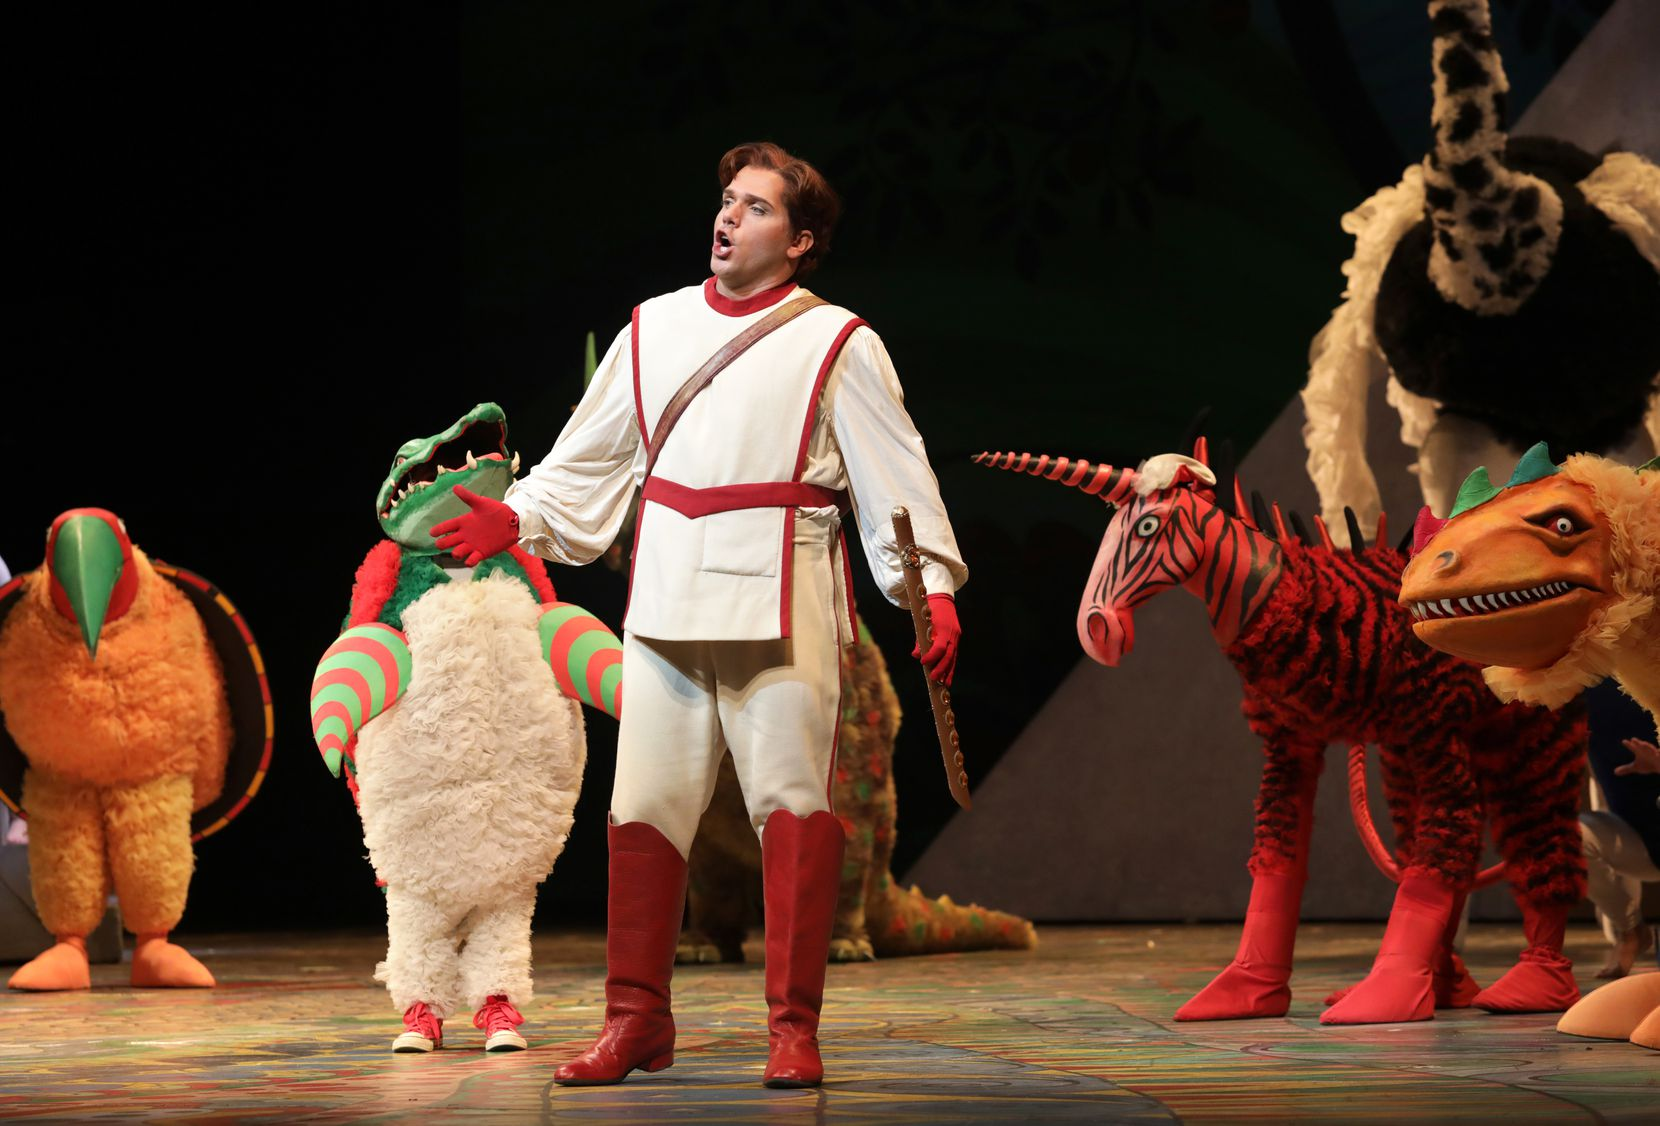 """Tamino, played by Paolo Fanale, performs during a dress rehearsal of Dallas Opera's """"The Magic Flute"""" at Winspear Opera House on Oct. 15, 2019."""